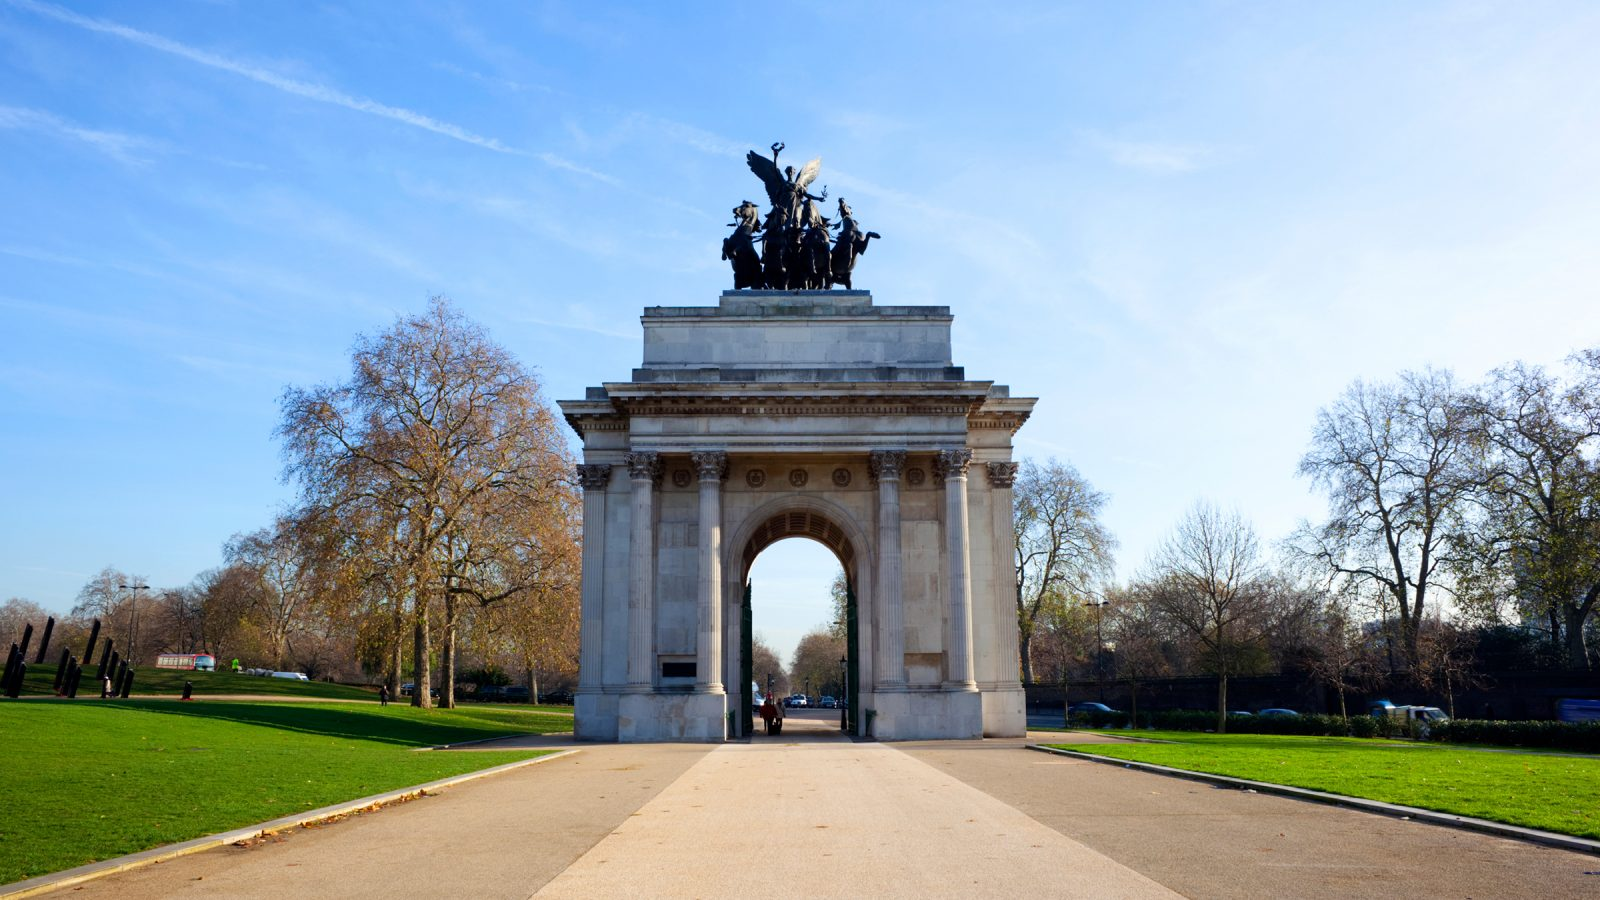 The Wellington Arch in Green Park London